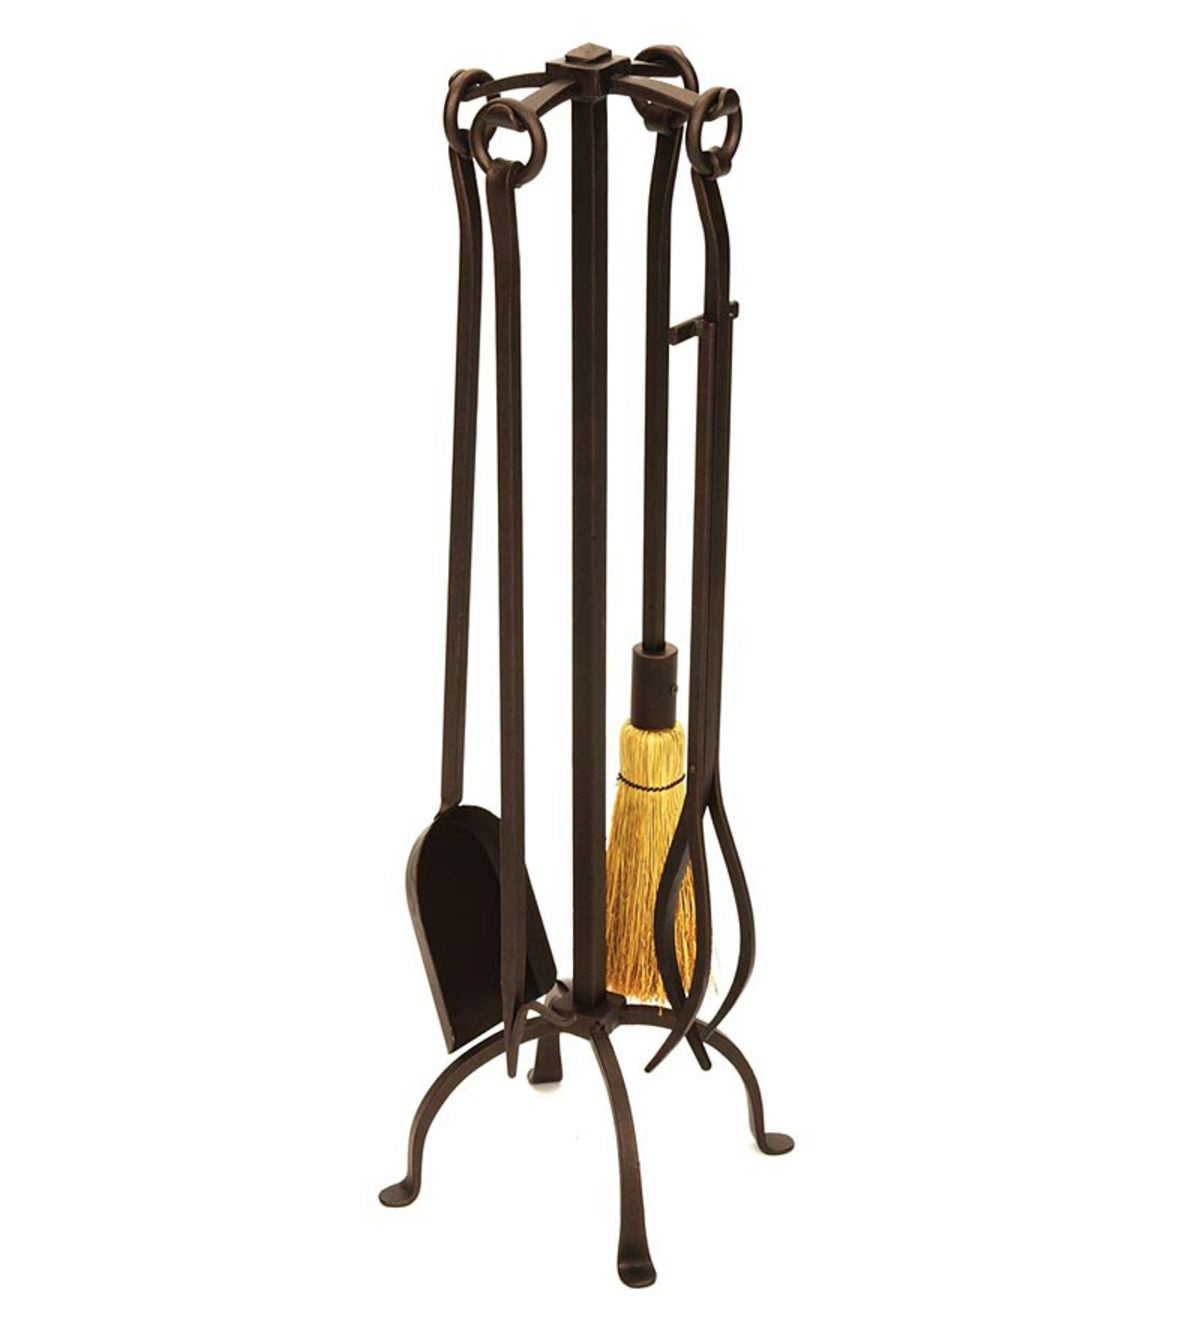 English Country 5-Piece Fireplace Tool Set In Bronze Finish - Bronze